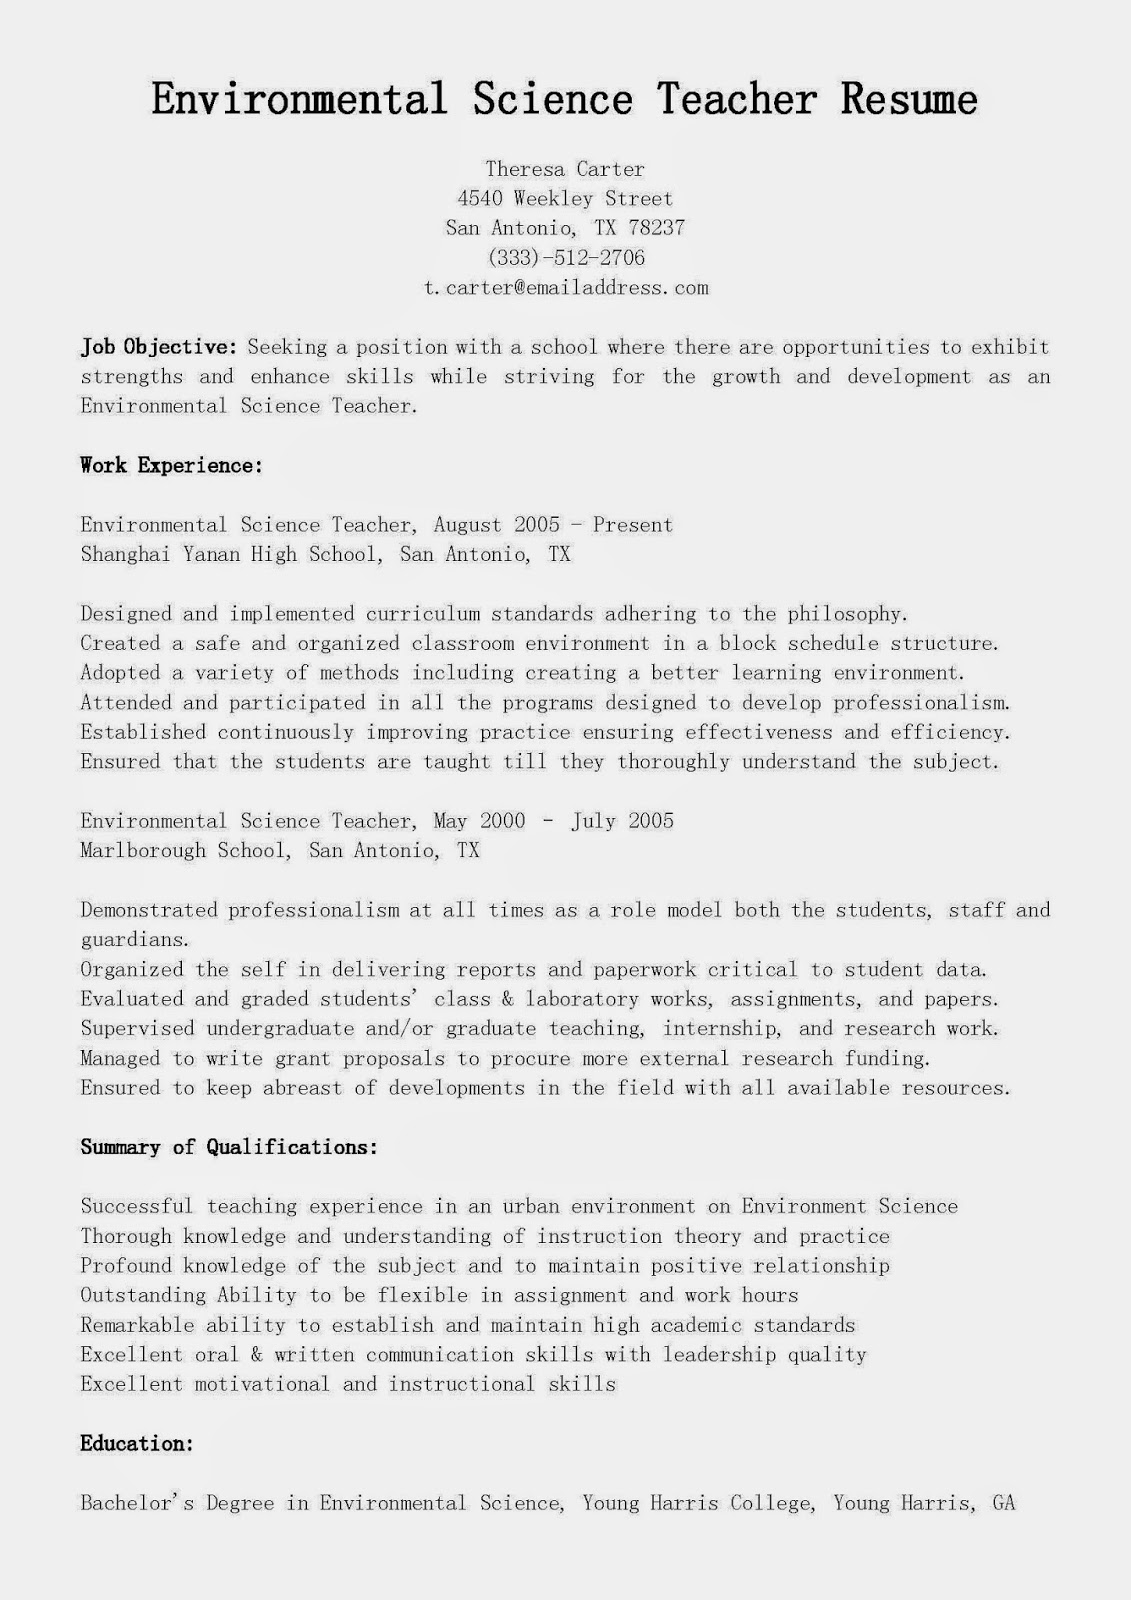 resume sample skills and abilities create professional resumes resume sample skills and abilities sample administrative assistant resume and tips resume samples environmental science teacher